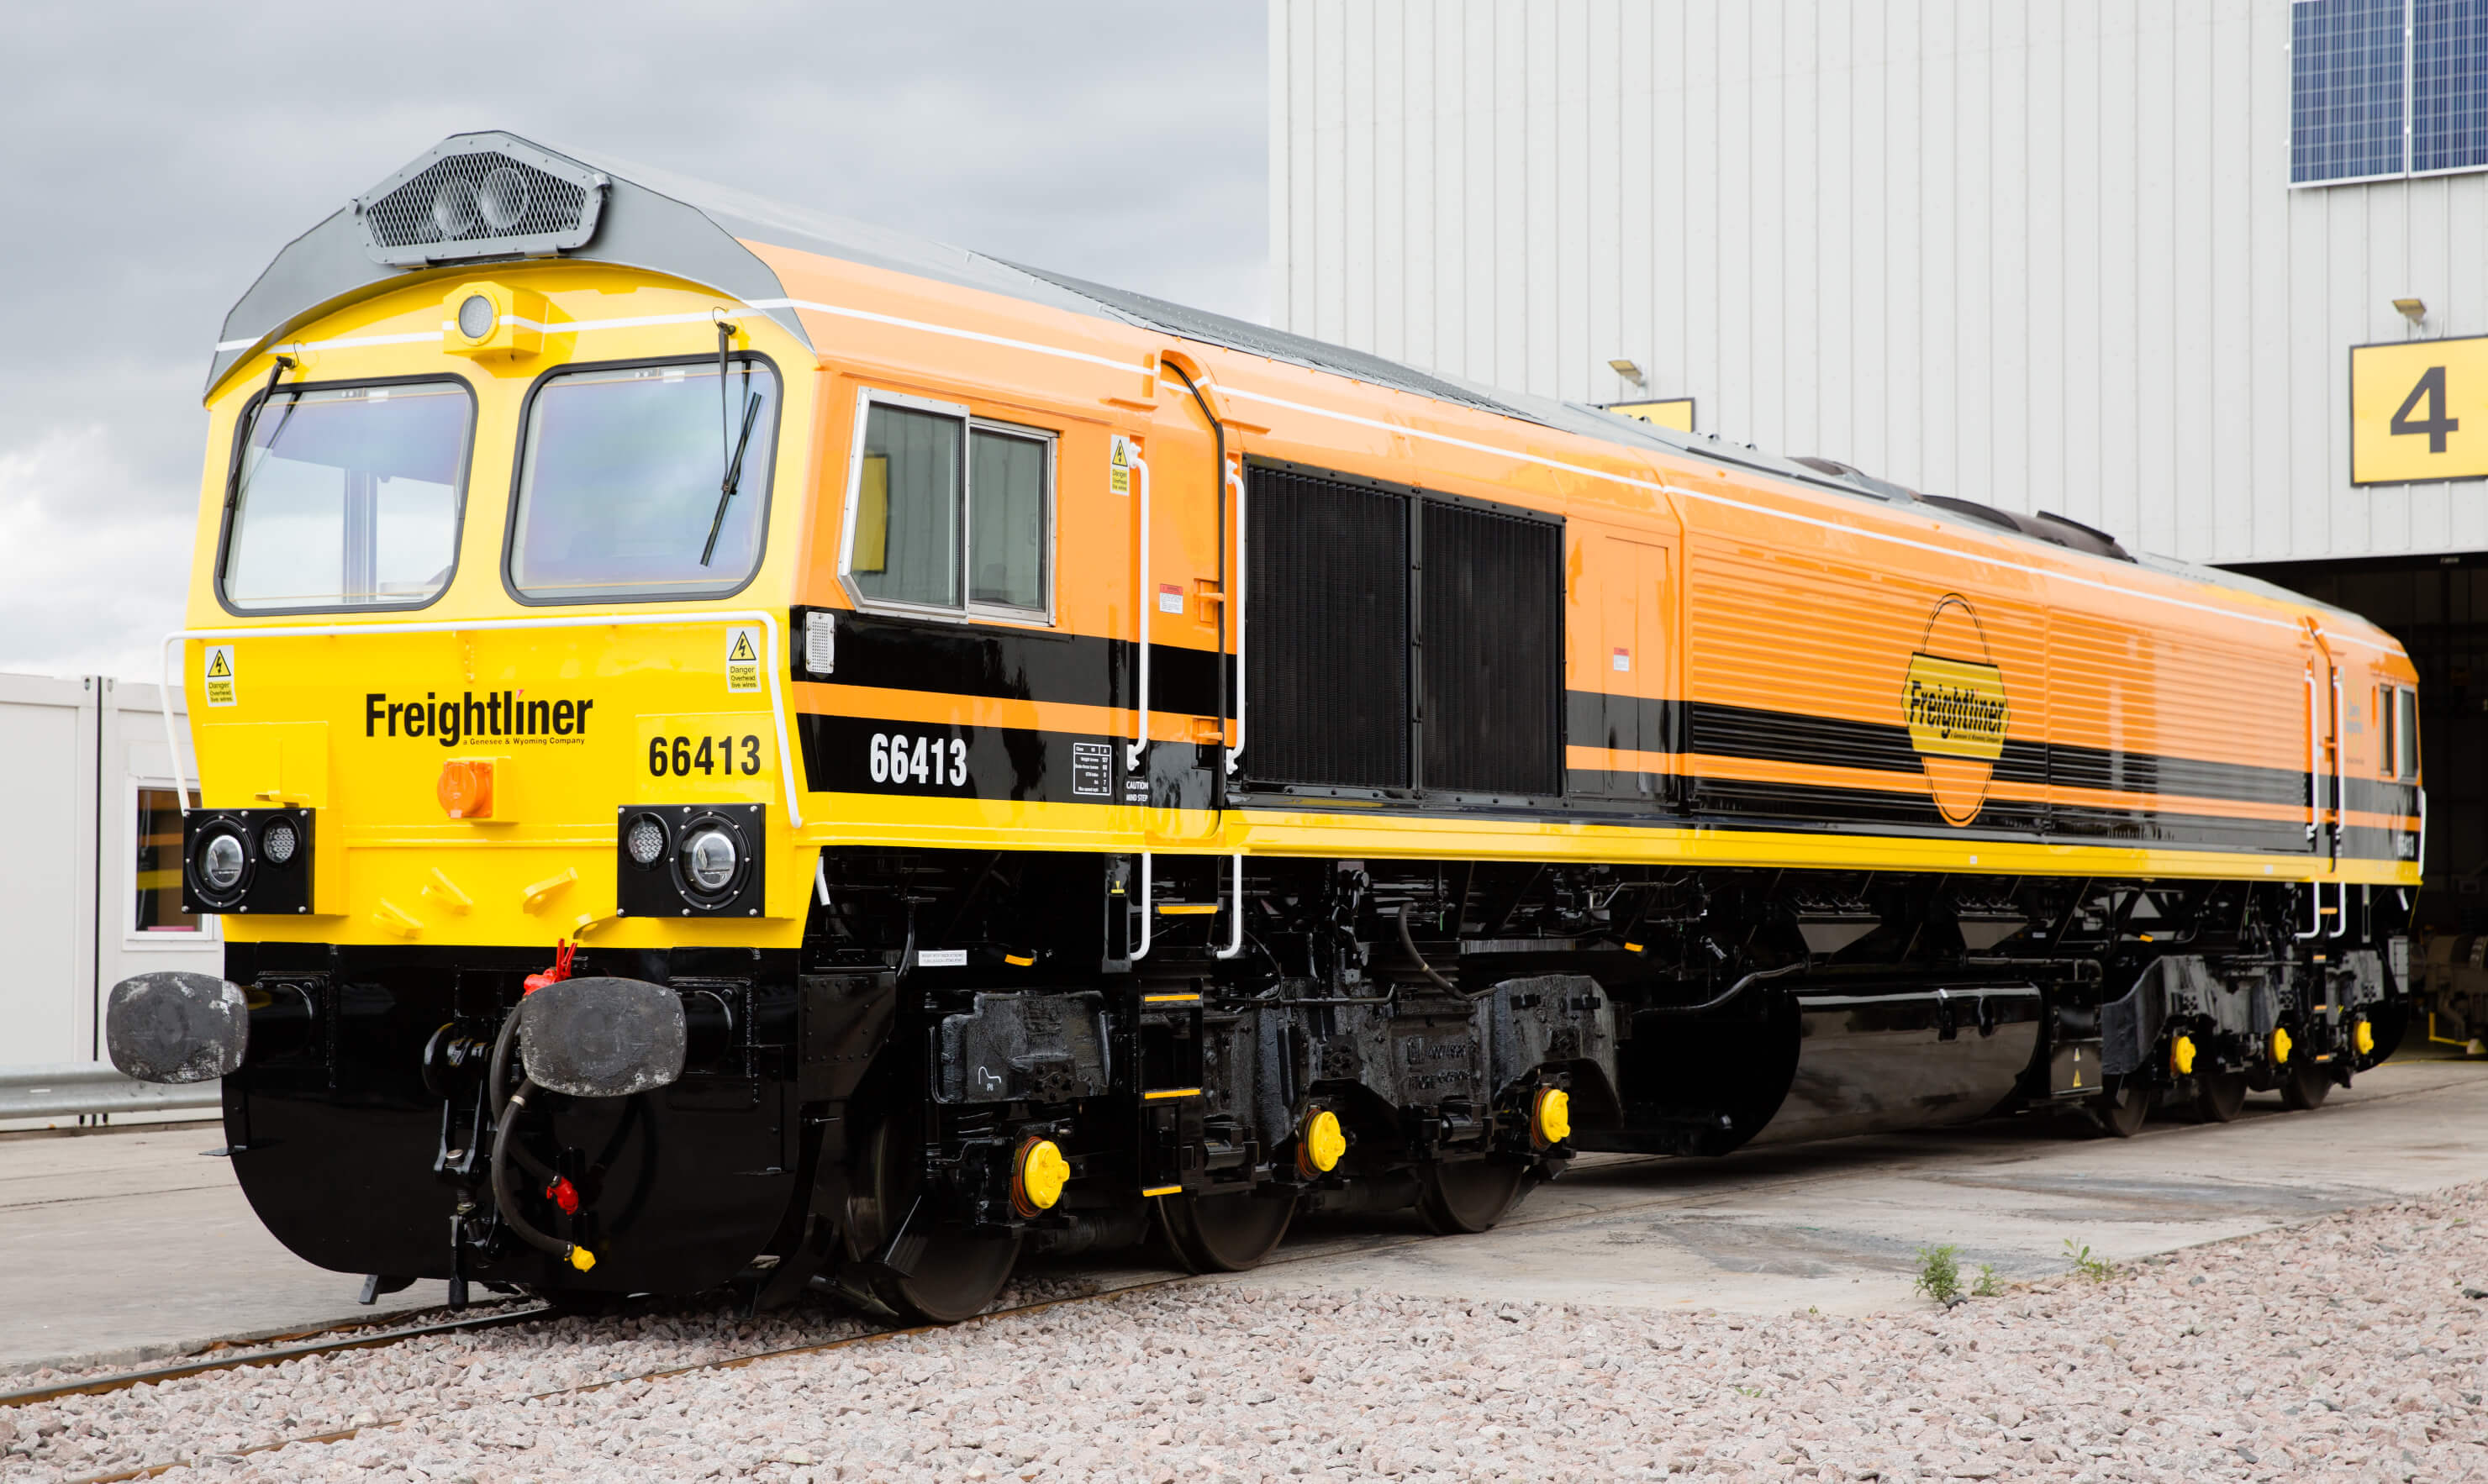 2015 - Freightliner acquired by G&W